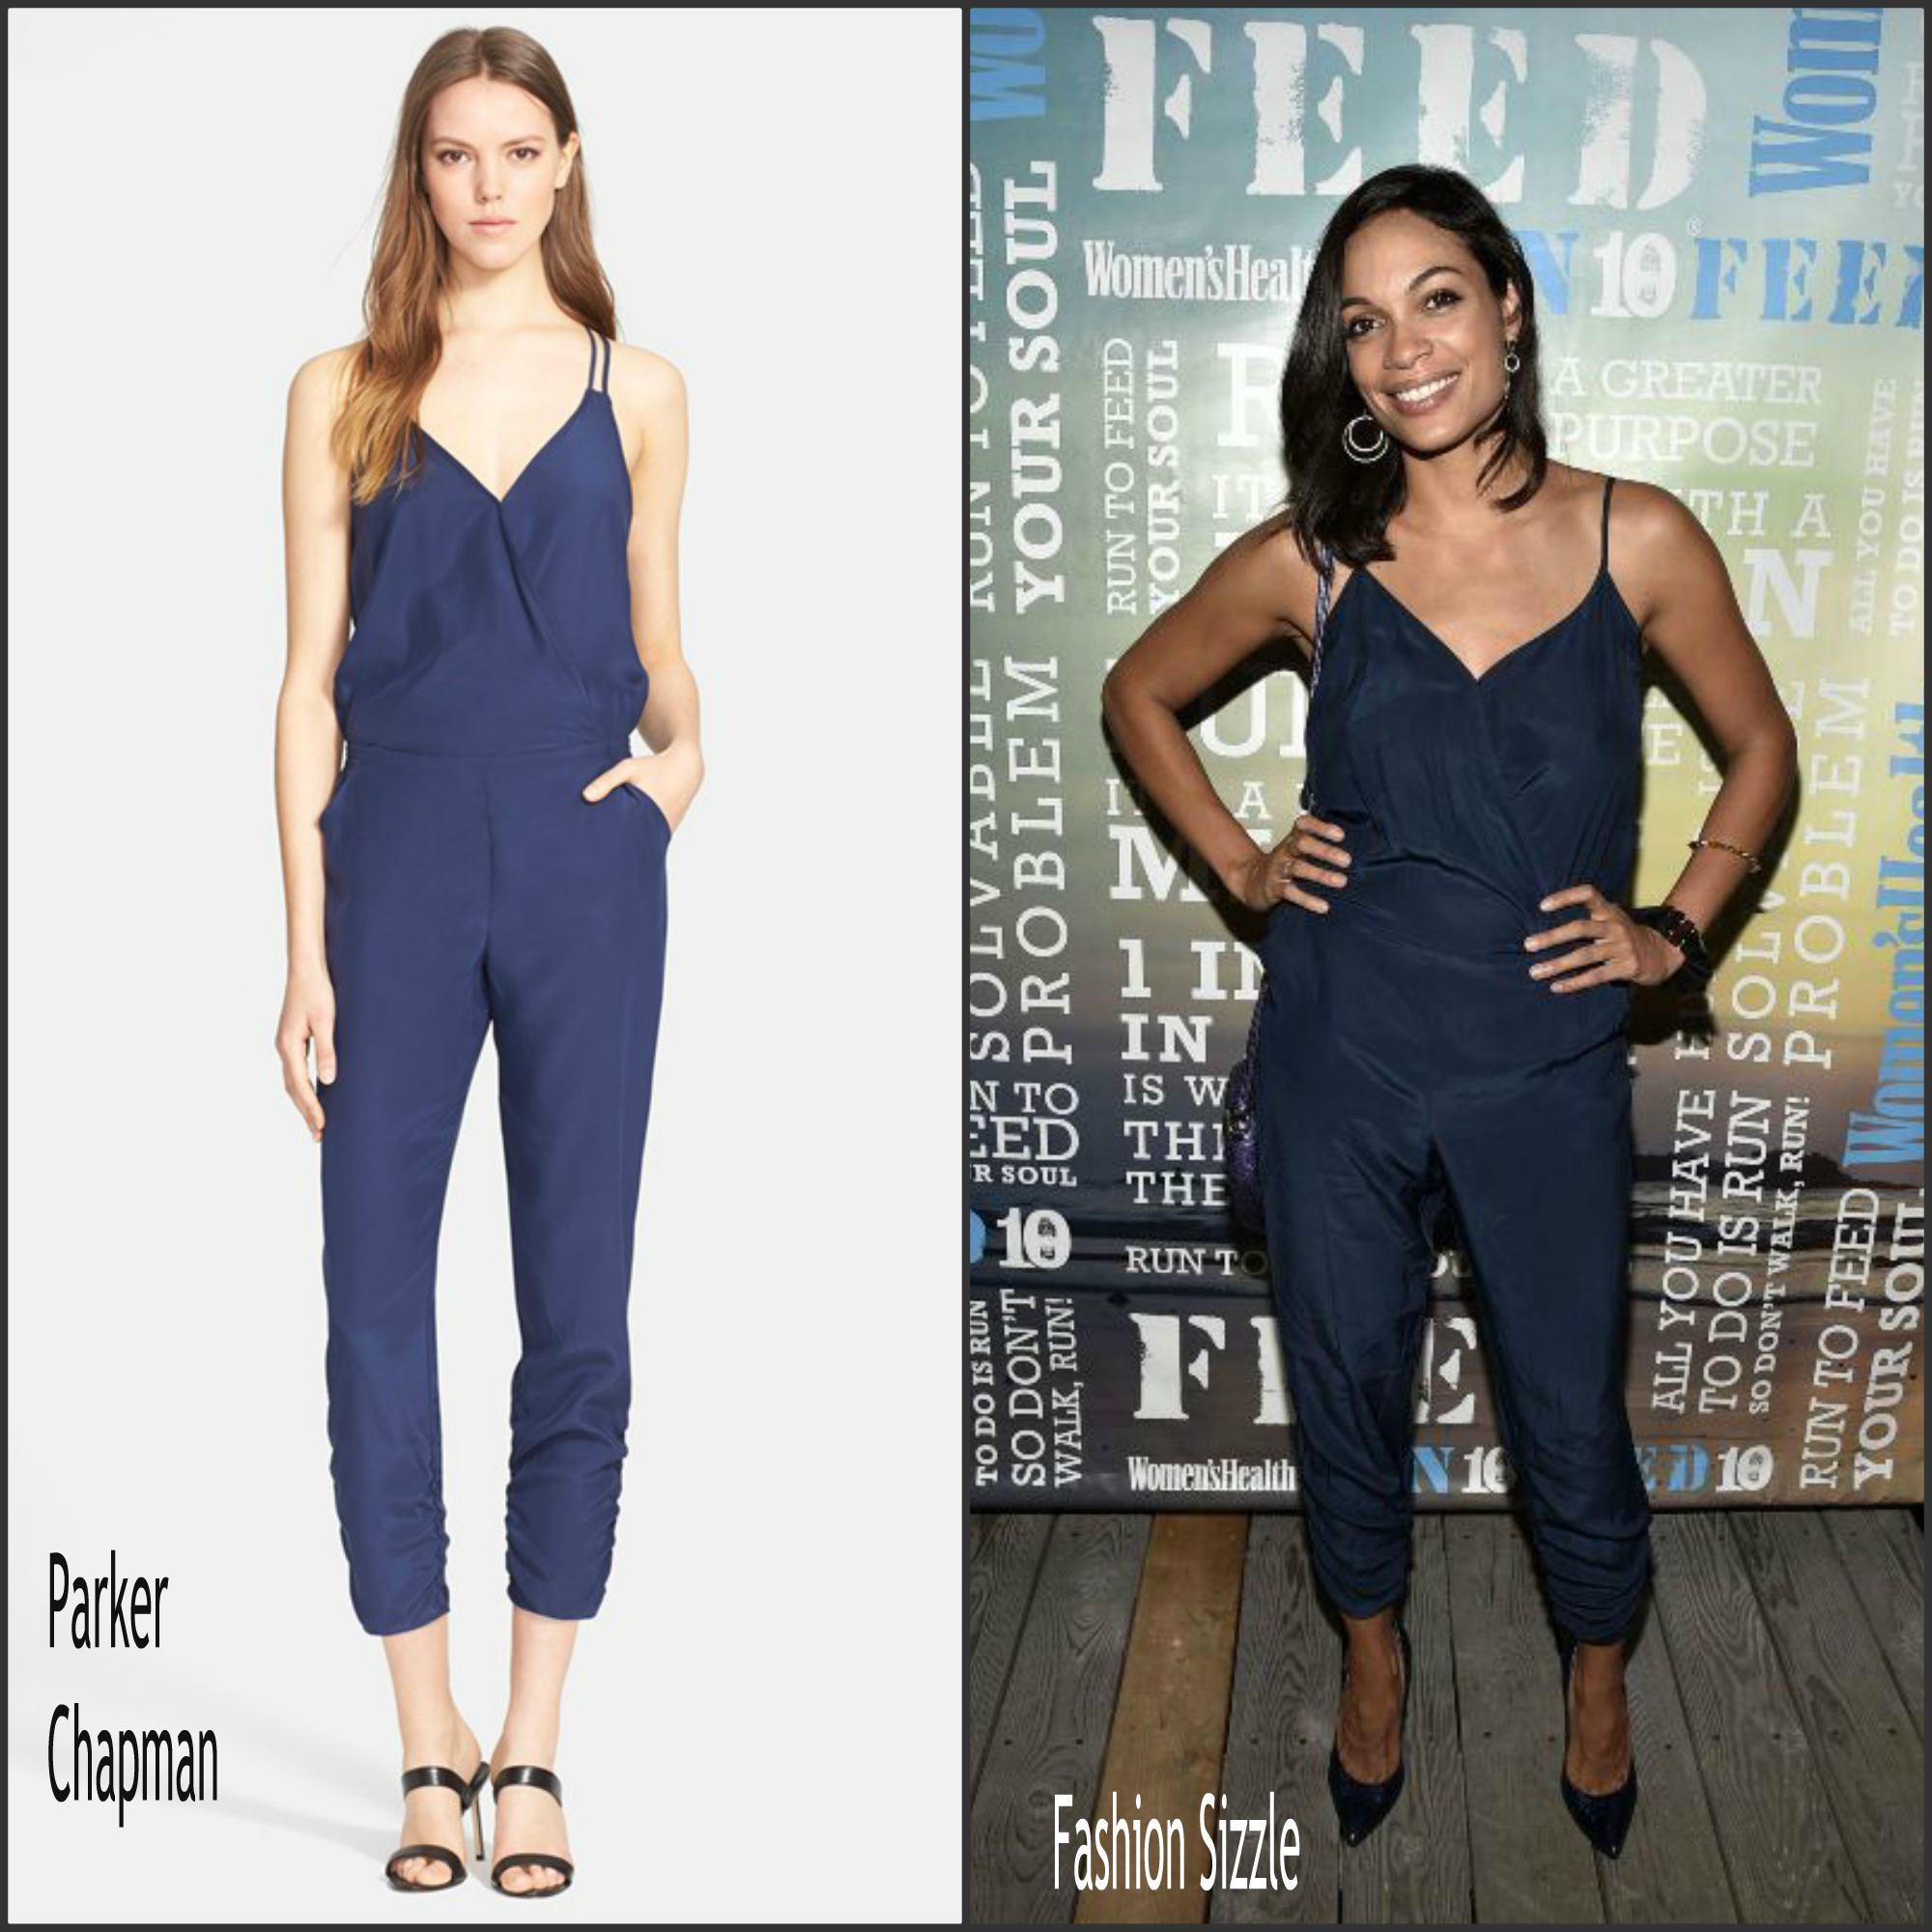 rosario-dawson-in-parker-chapman-2015-womens-healths-party-under-the-stars-in-ny